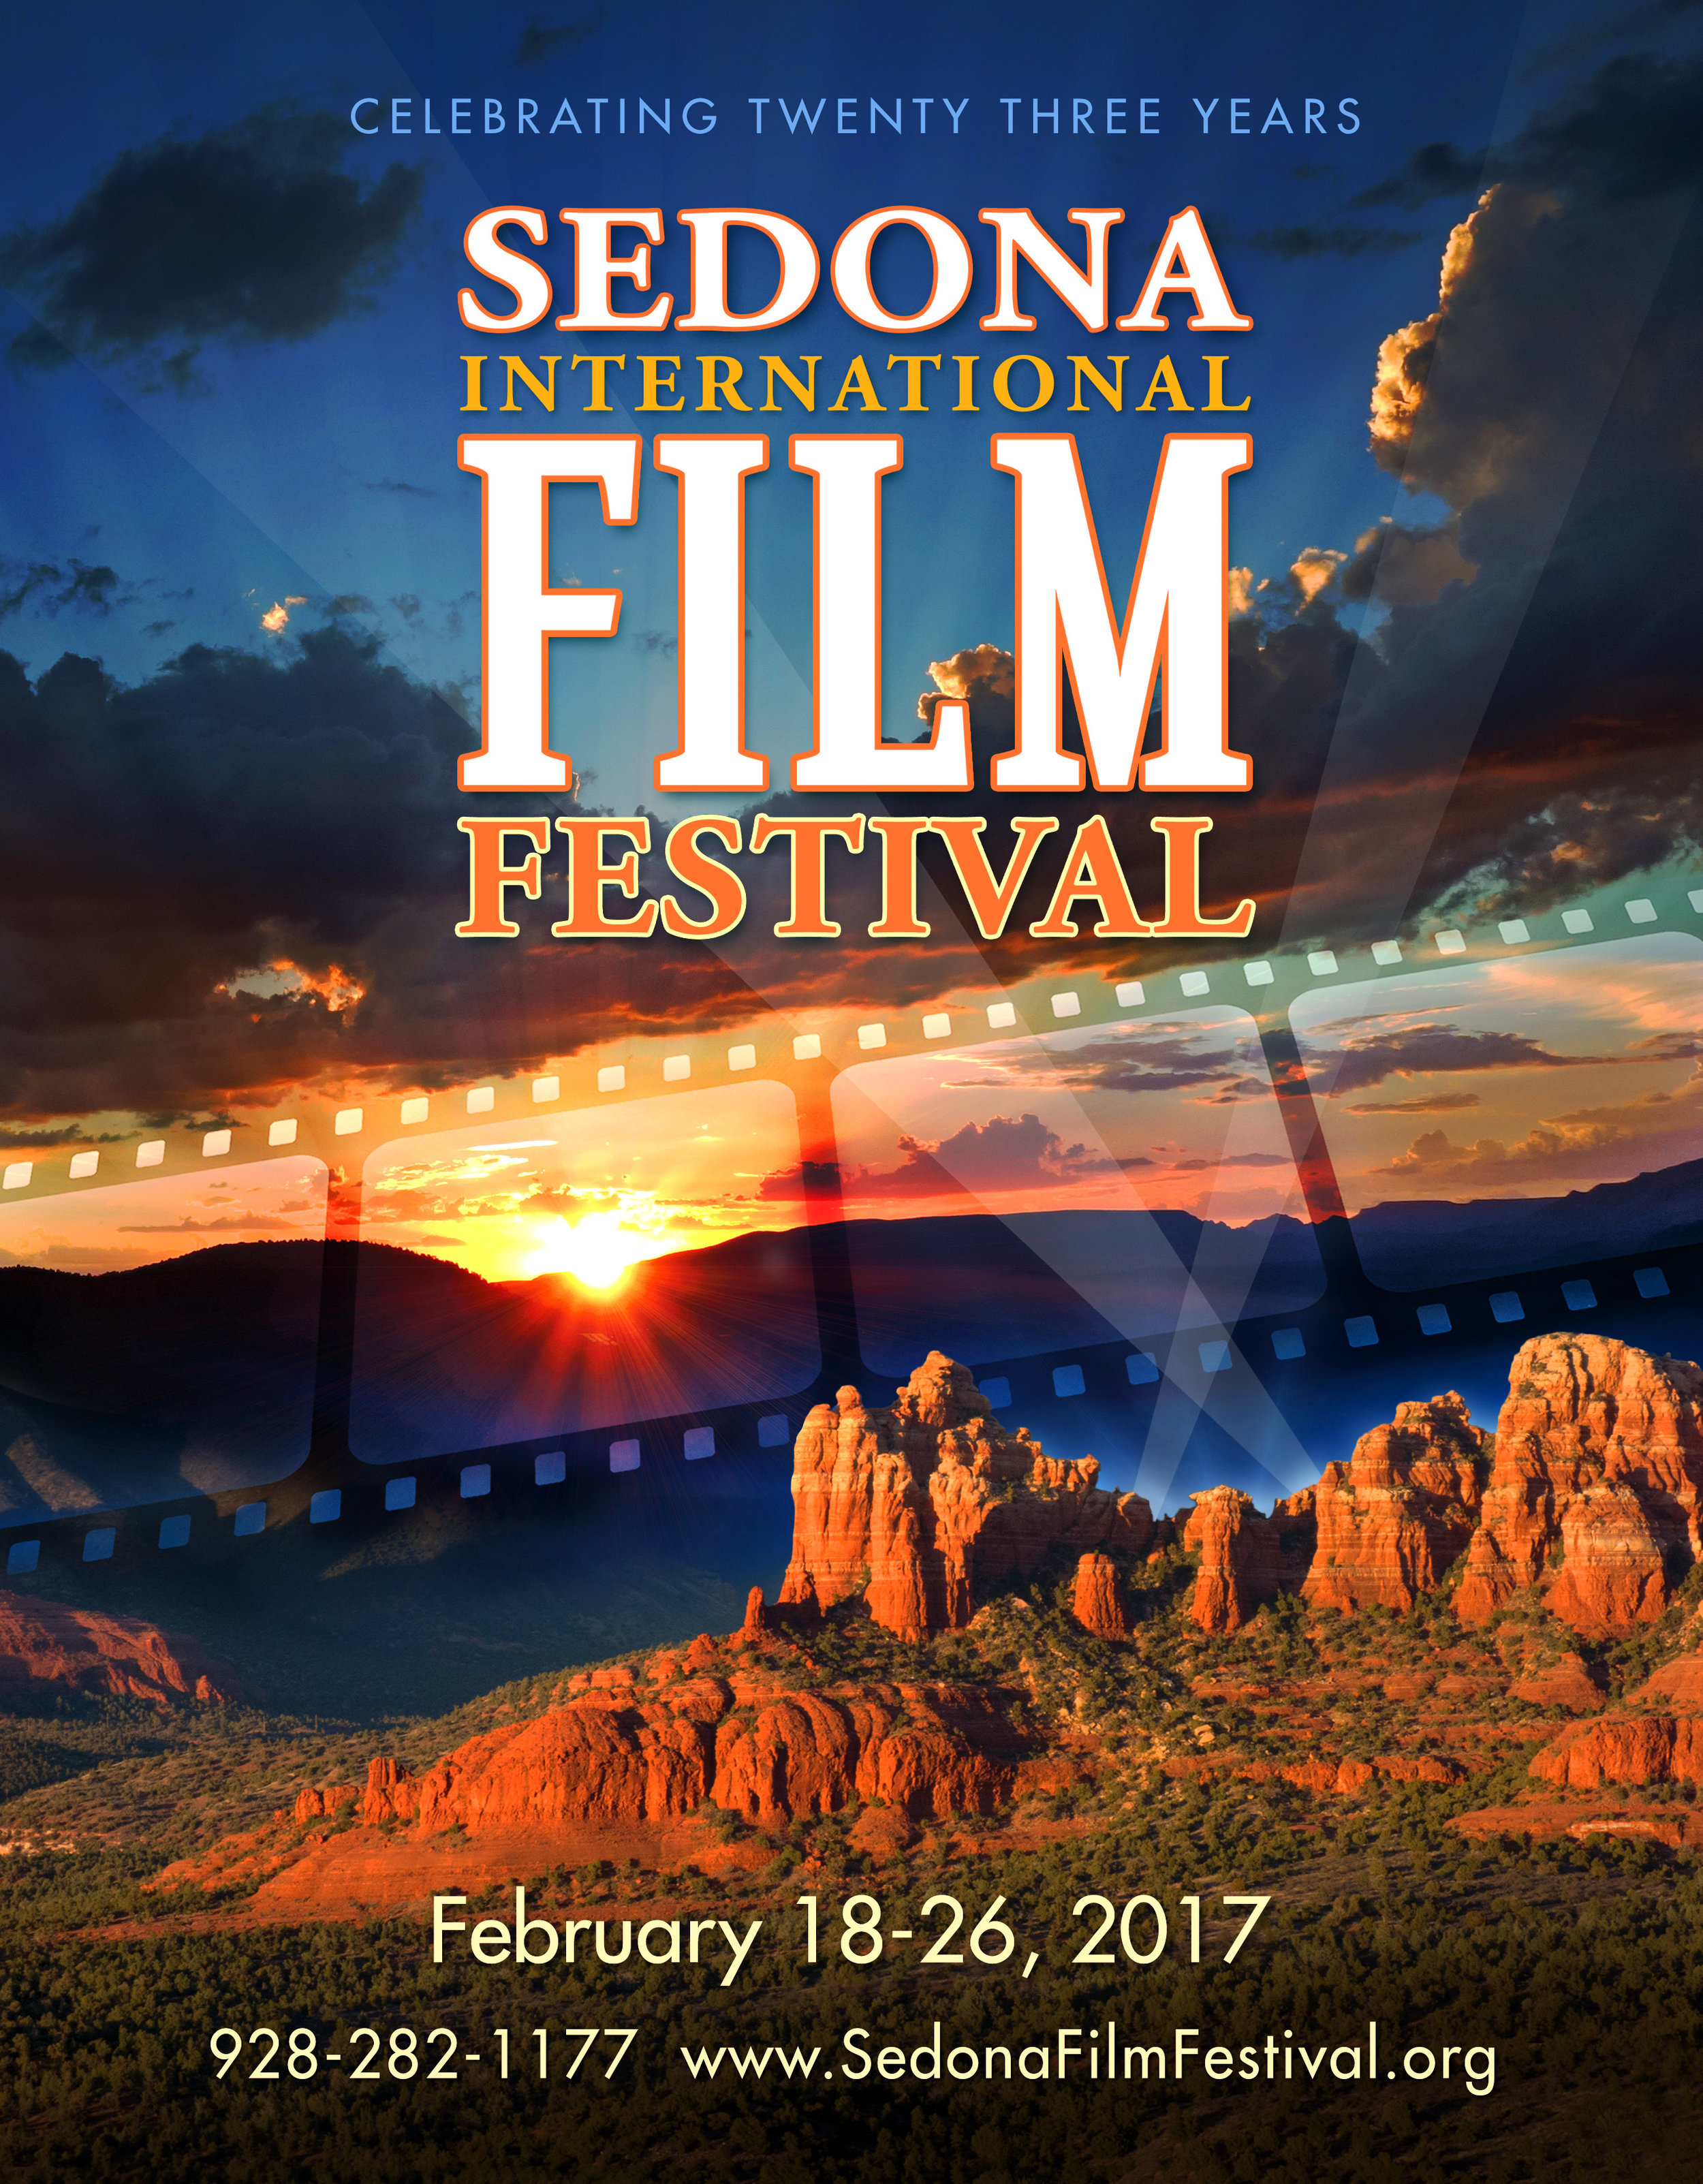 Sedona International Film Festival Poster 2017